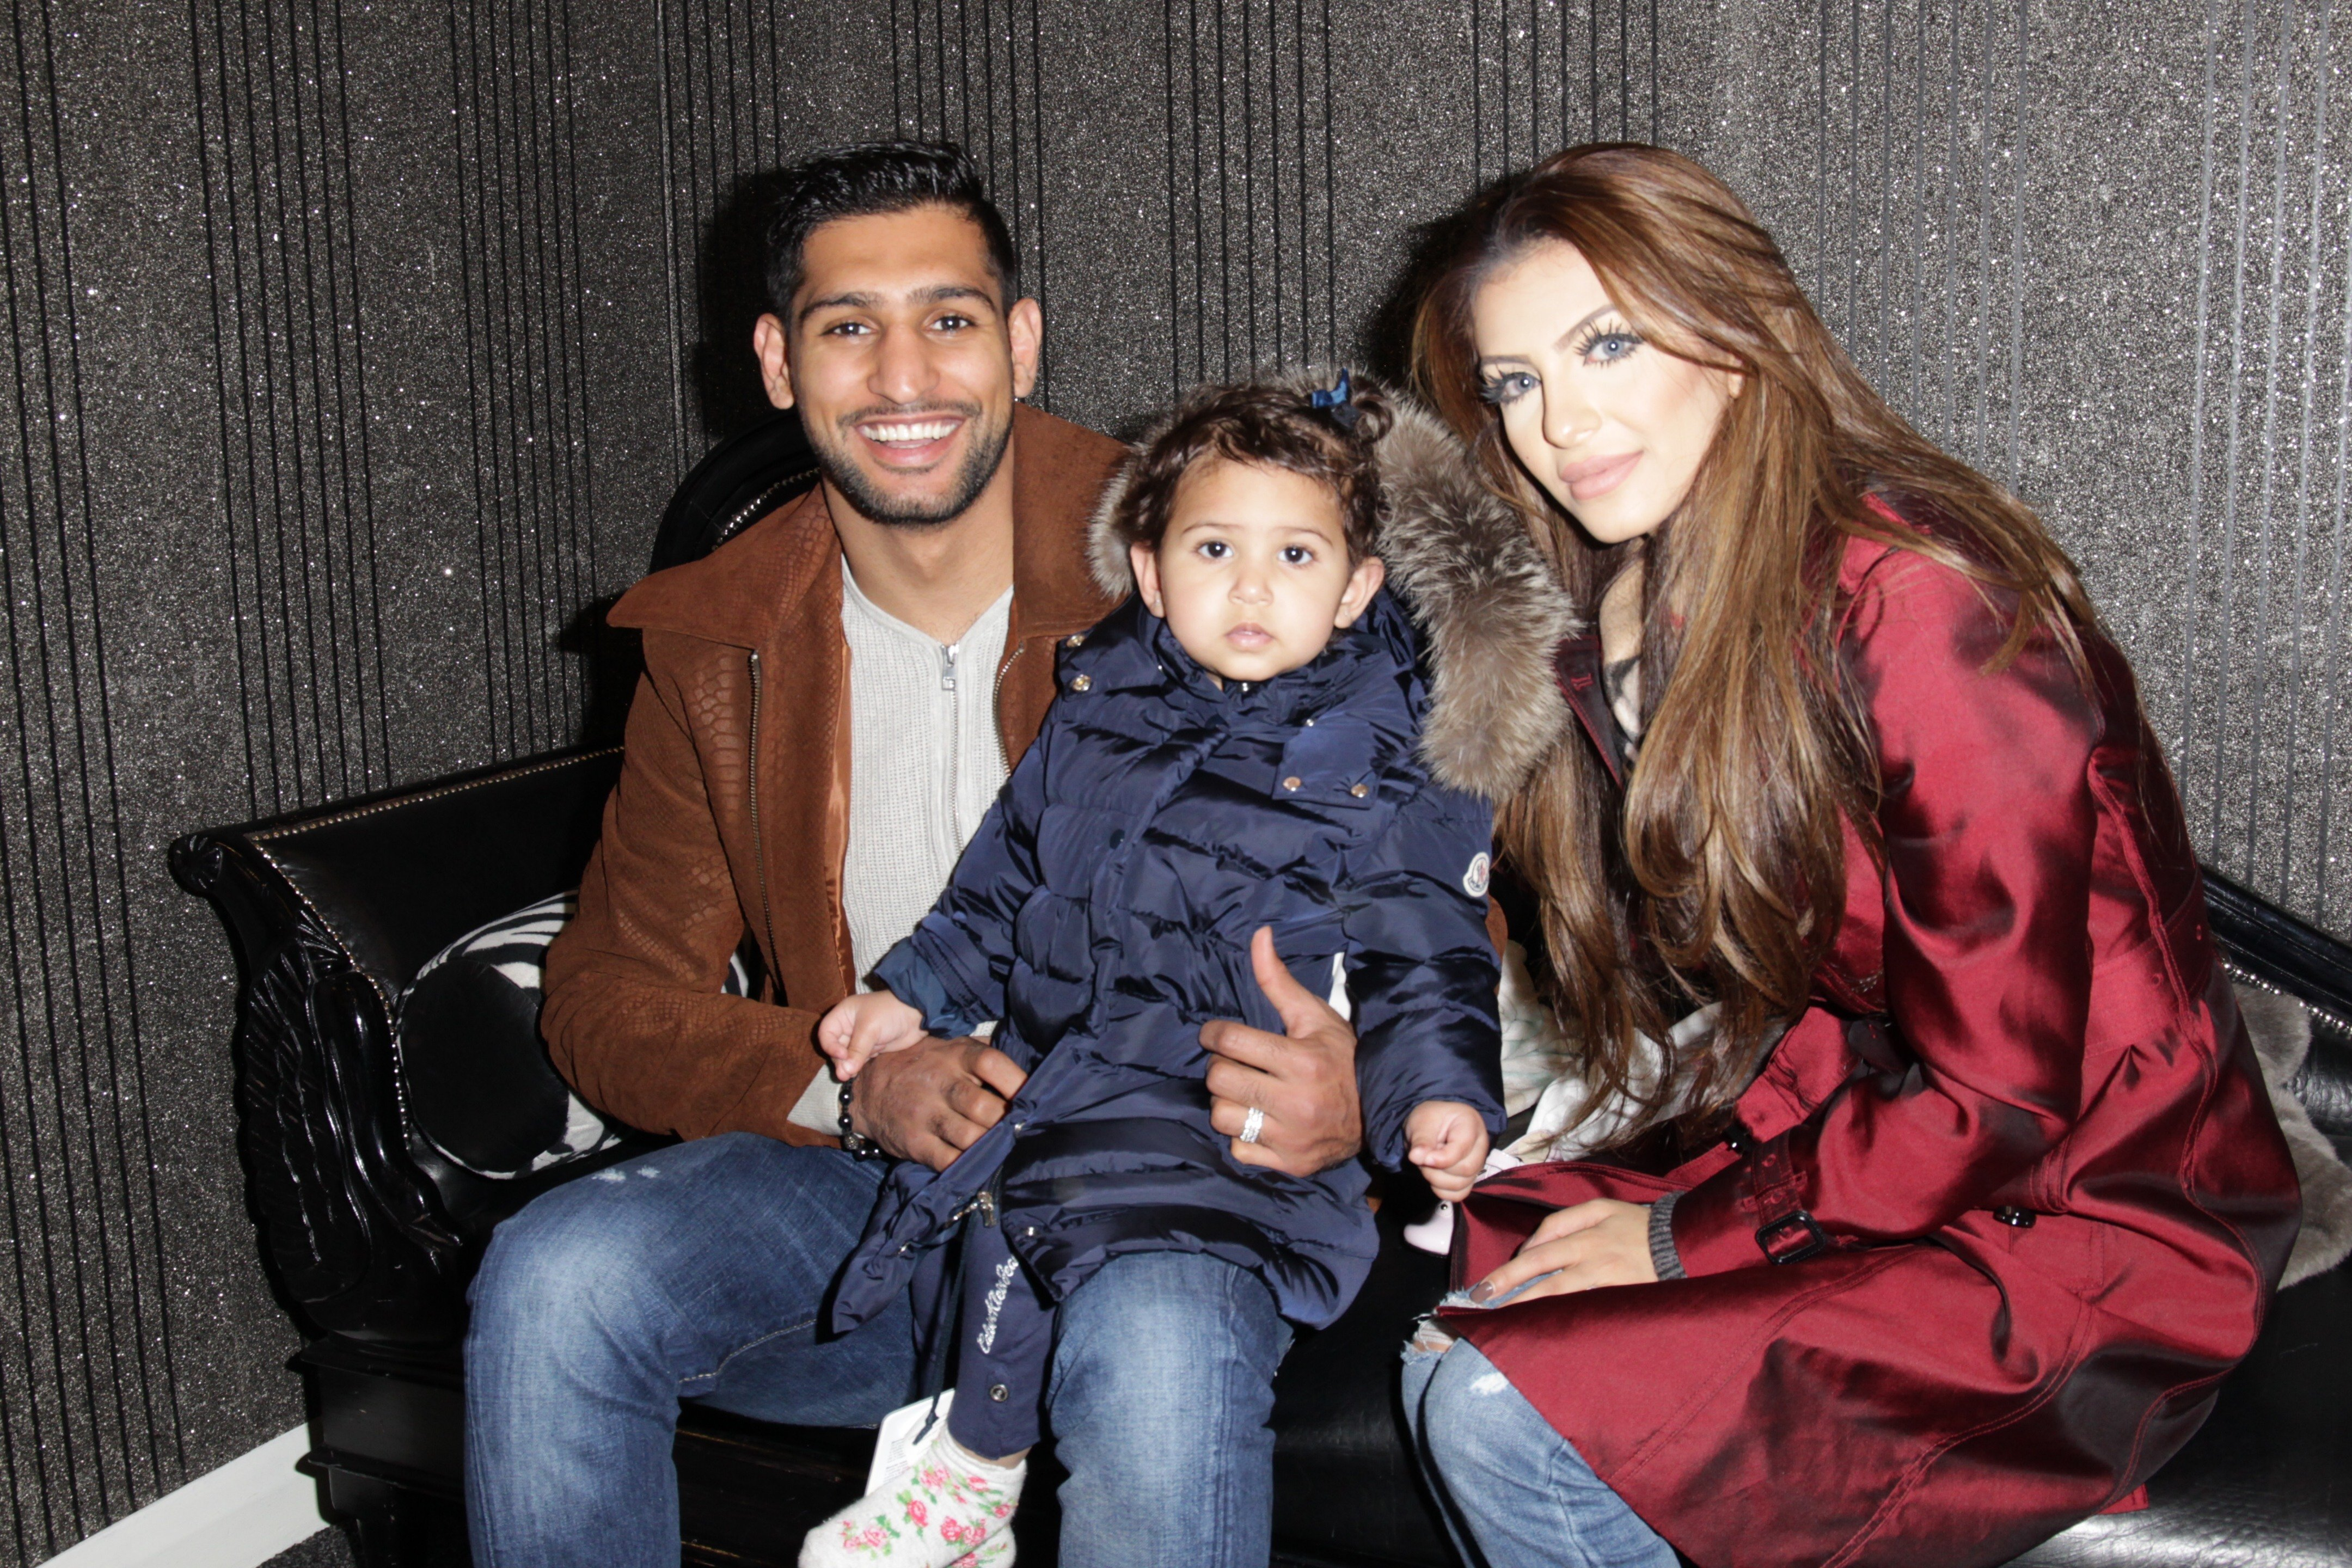 Amir Khan leaves the country just hours after marriage back on track tweet